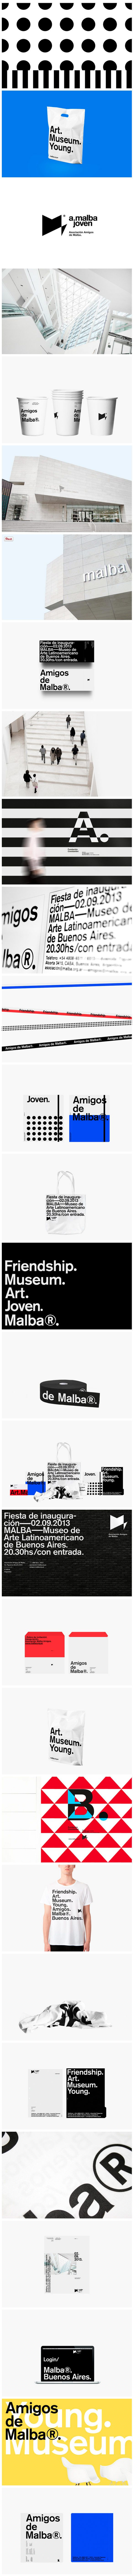 Malba-Joven || Introducing Moire Studios a thriving website and graphic design studio. Feel Free to Follow us @moirestudiosjkt to see more amazing pins like this. Or visit our website www.moirestudiosjkt.com to know more about us. #brandIdentityDesign #corporateDesign #logoDesign ||